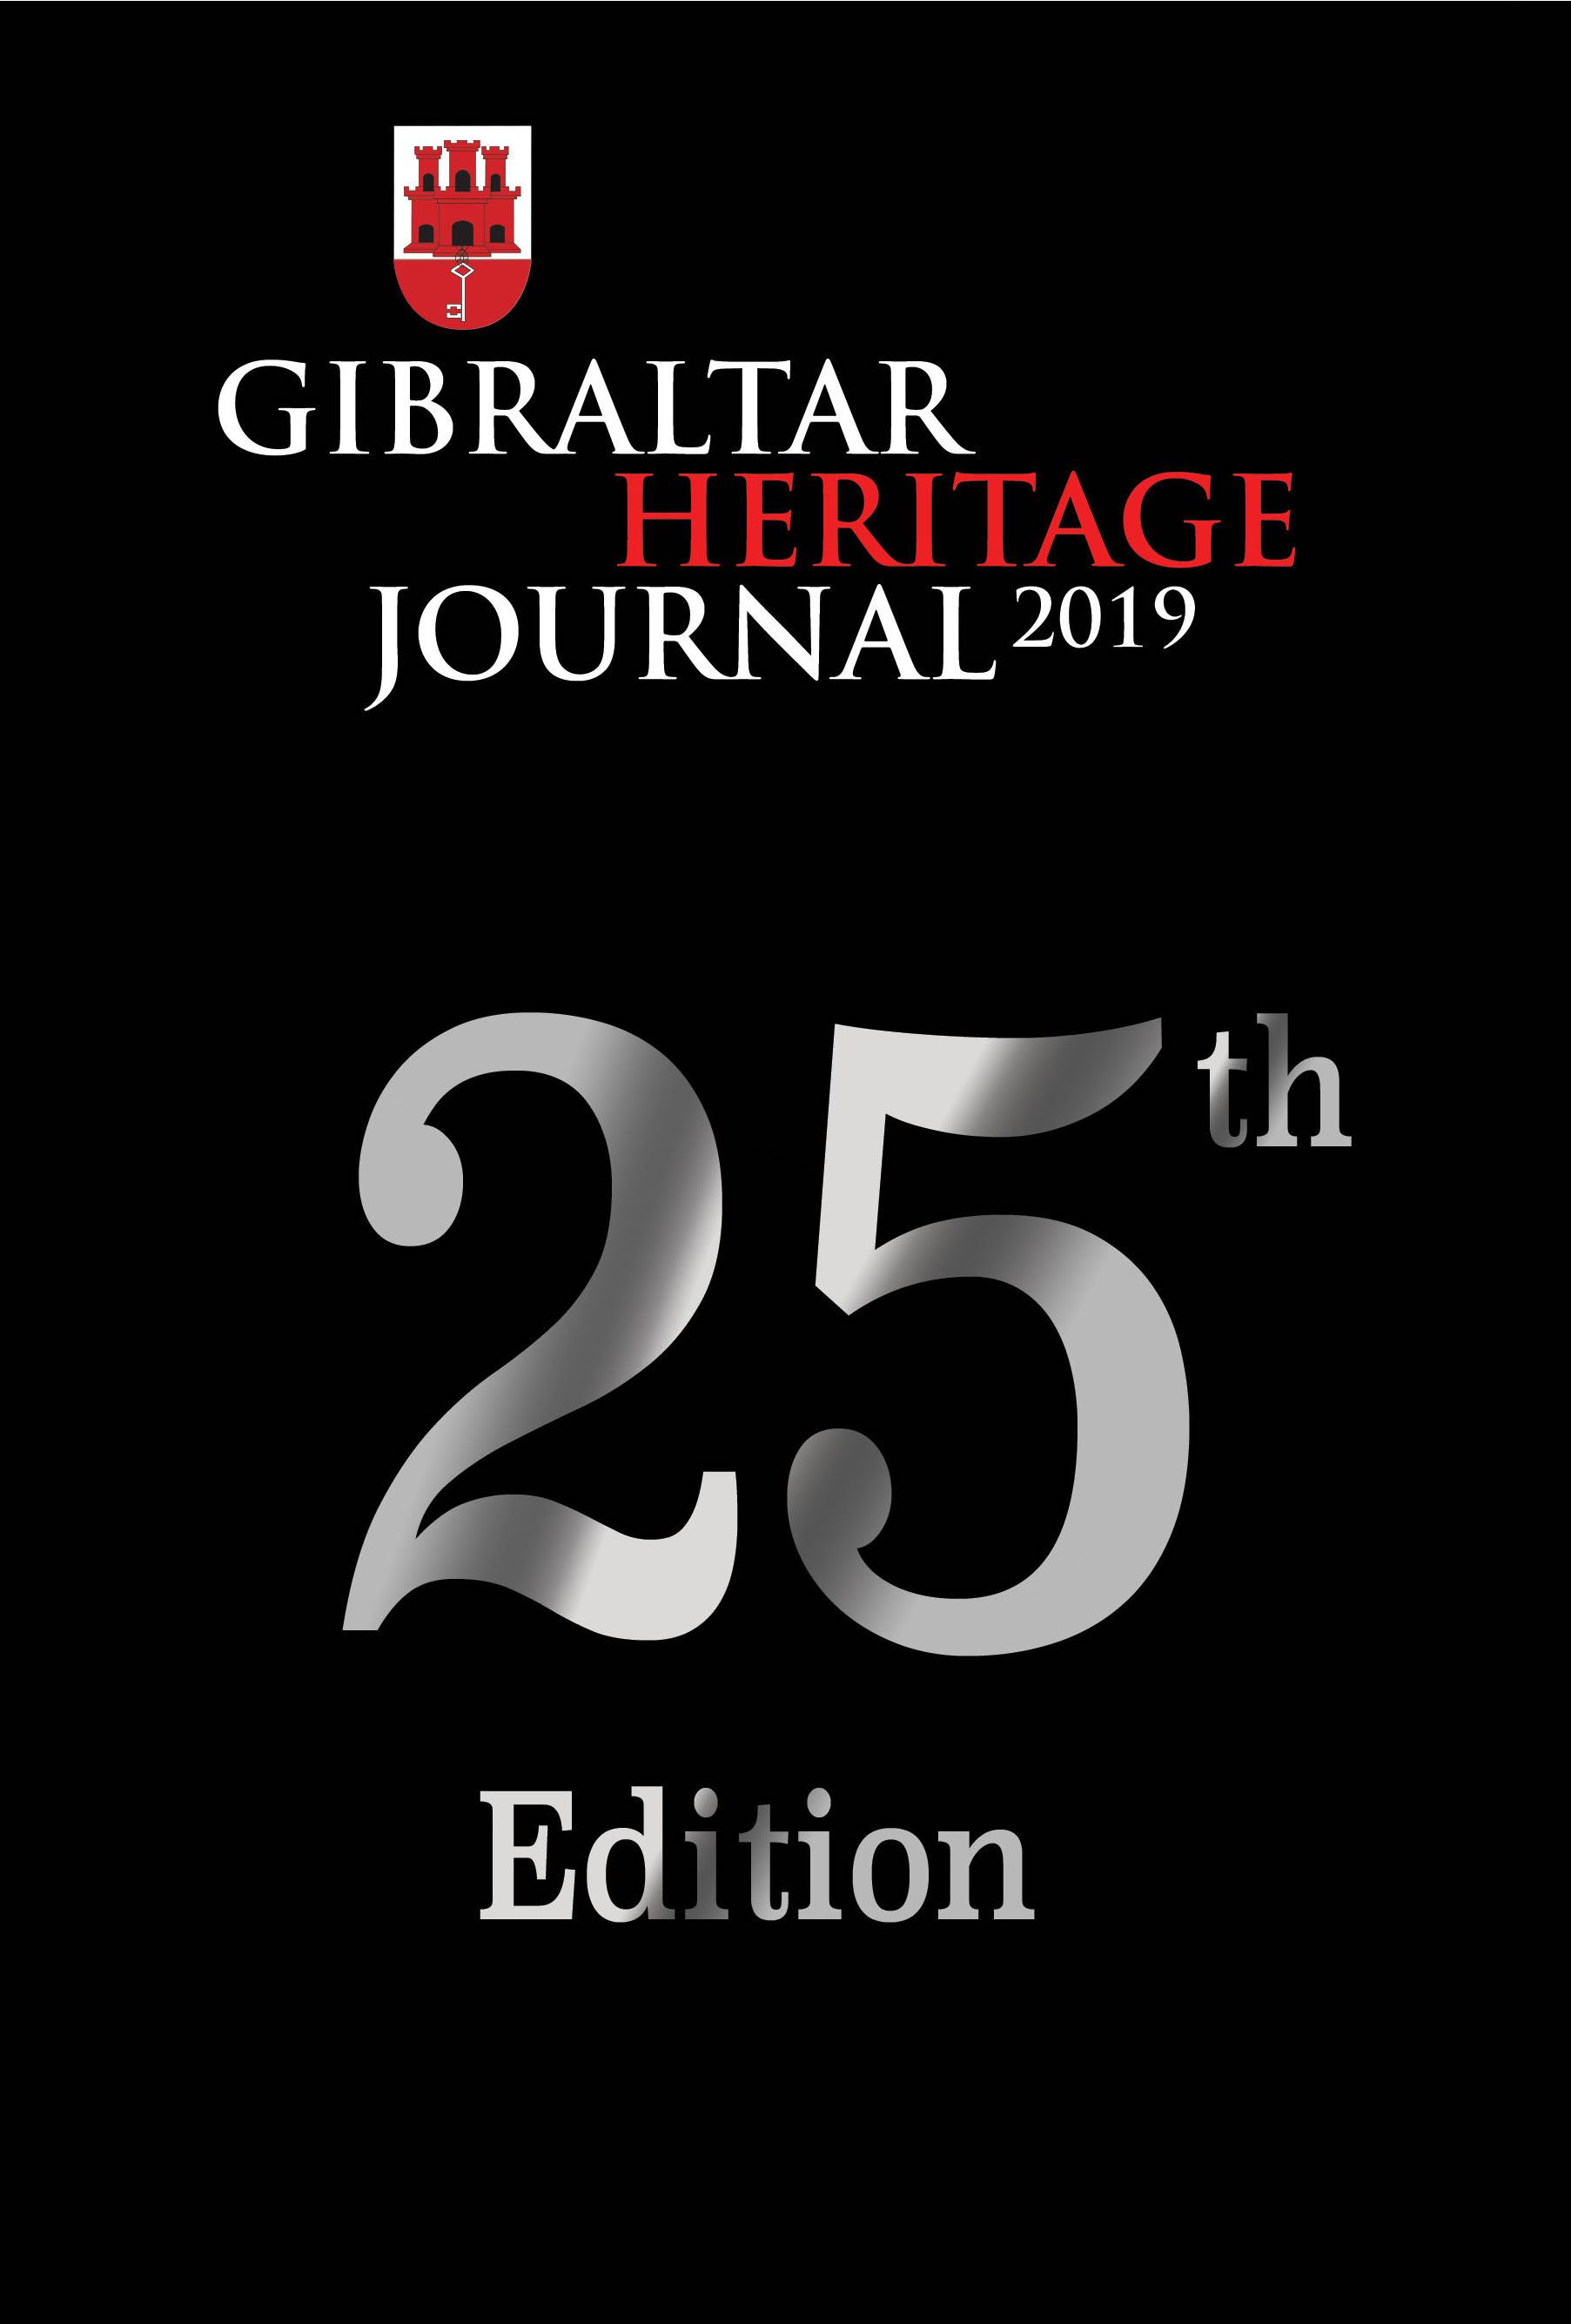 The Gibraltar Heritage Journal